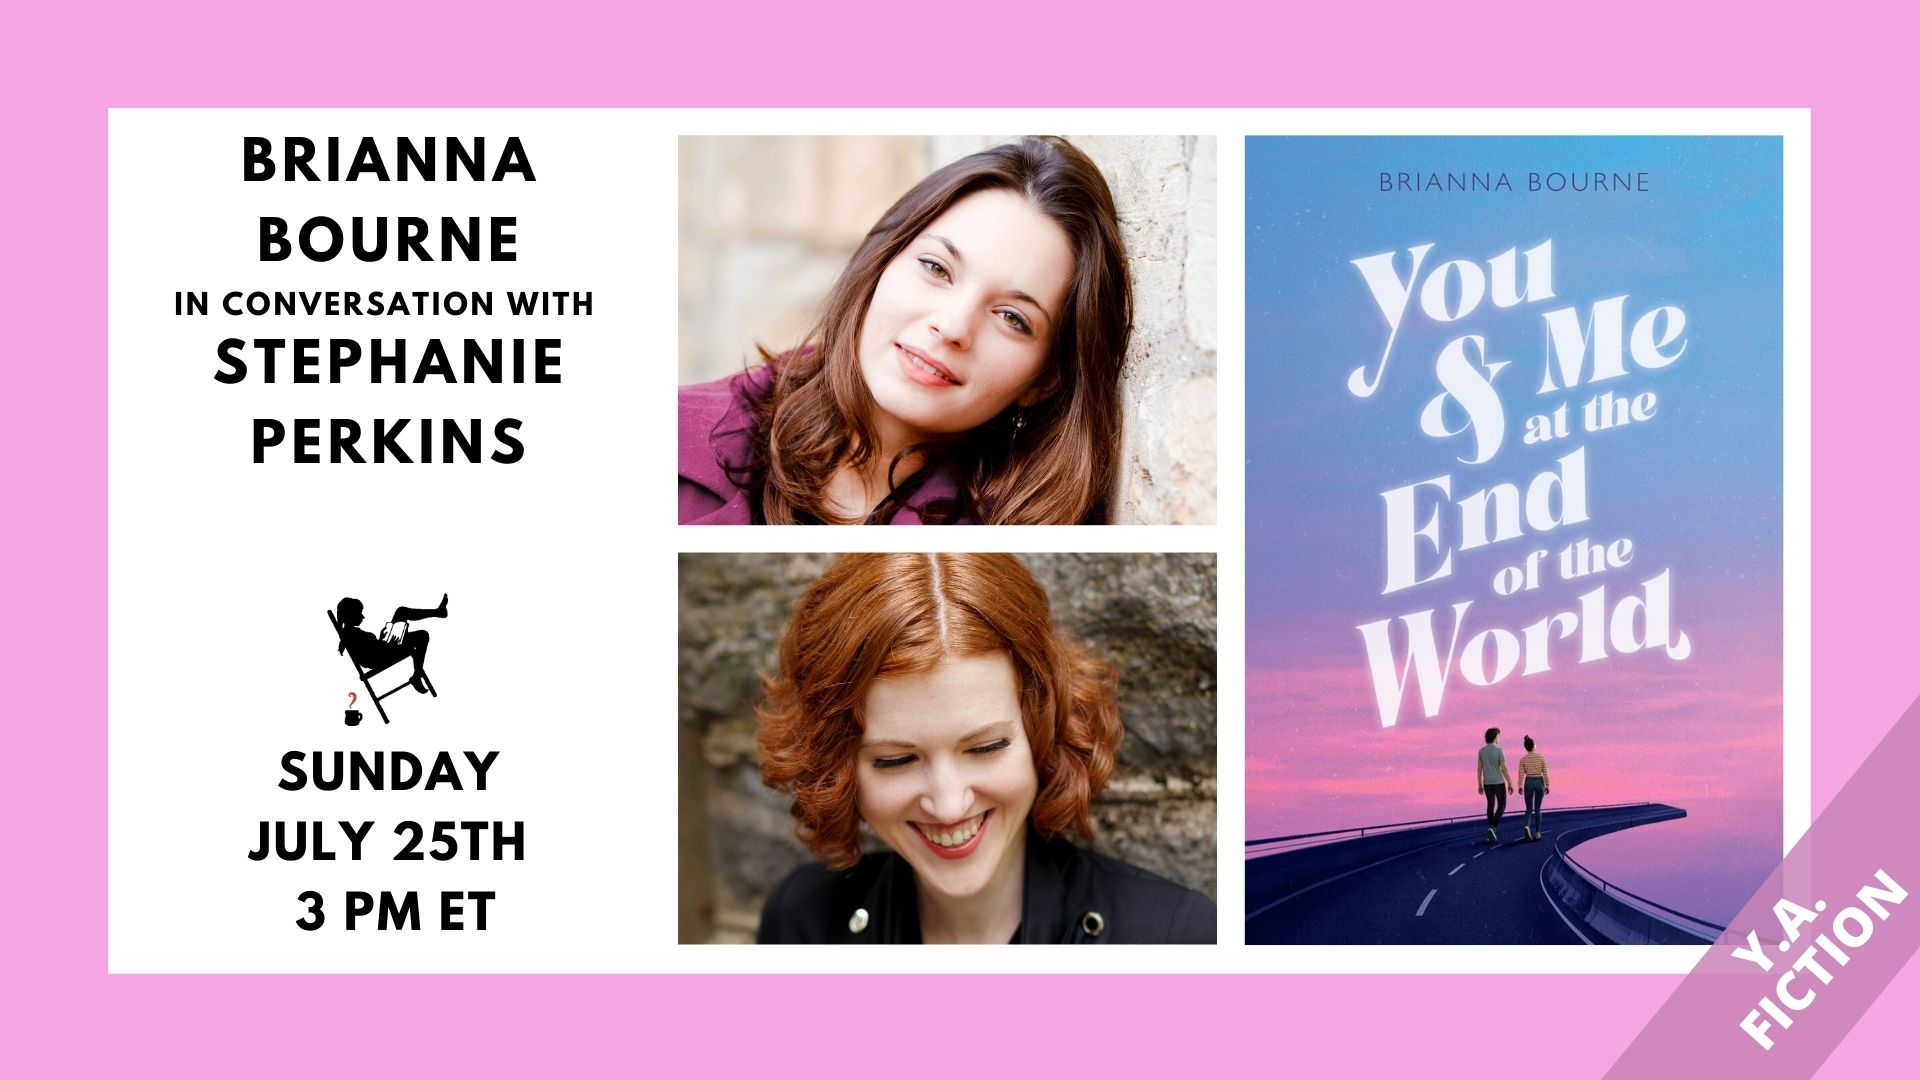 Image shows a pink border with a white box containing: You & Me at the End of the World book cover and title; photos of Brianna Bourne and Stephanie Perkins; and the event date of 7/25/21 at 3pm.